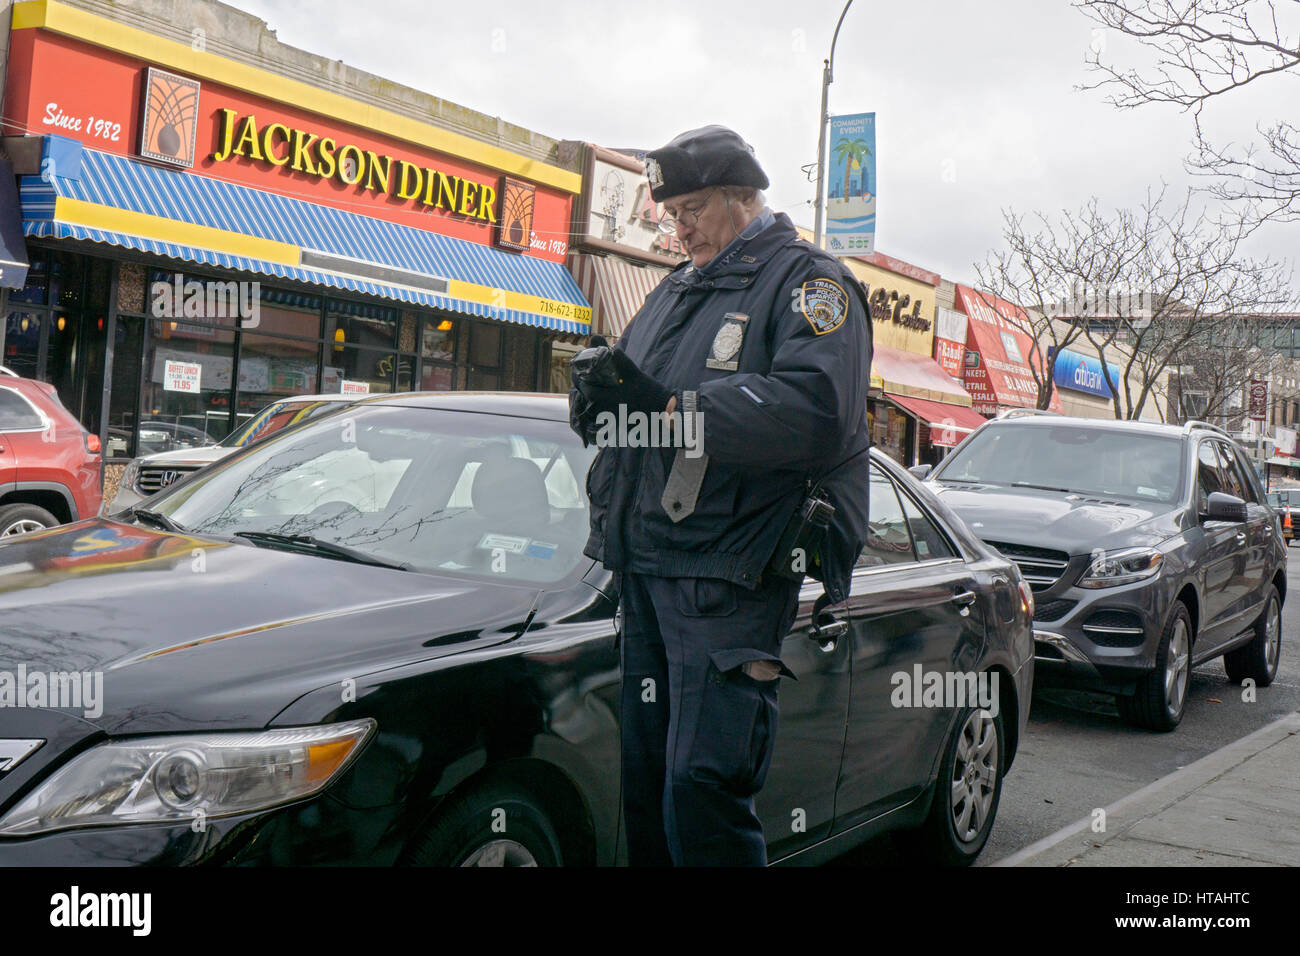 A New York City traffic policeman writing a summons for a car with a parking violation on 74th Street in Jackson - Stock Image